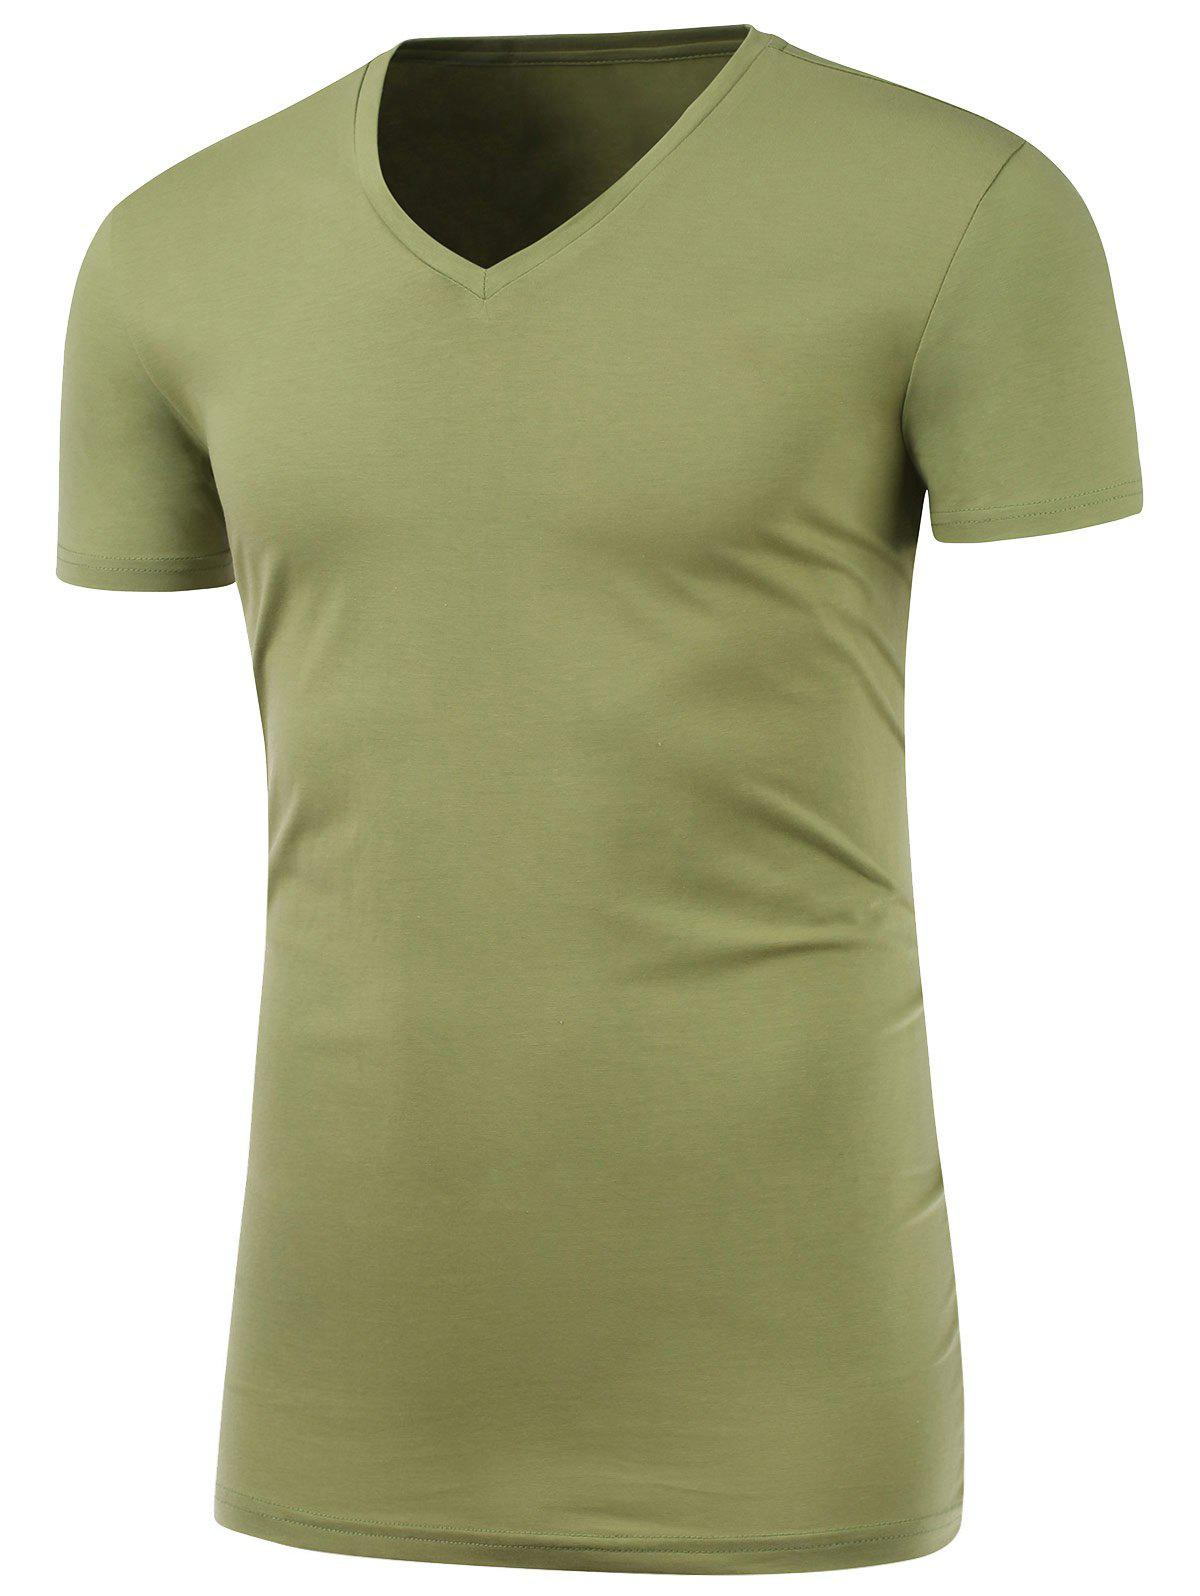 Slim Fit Short Sleeve V Neck Tee - PEA GREEN 4XL